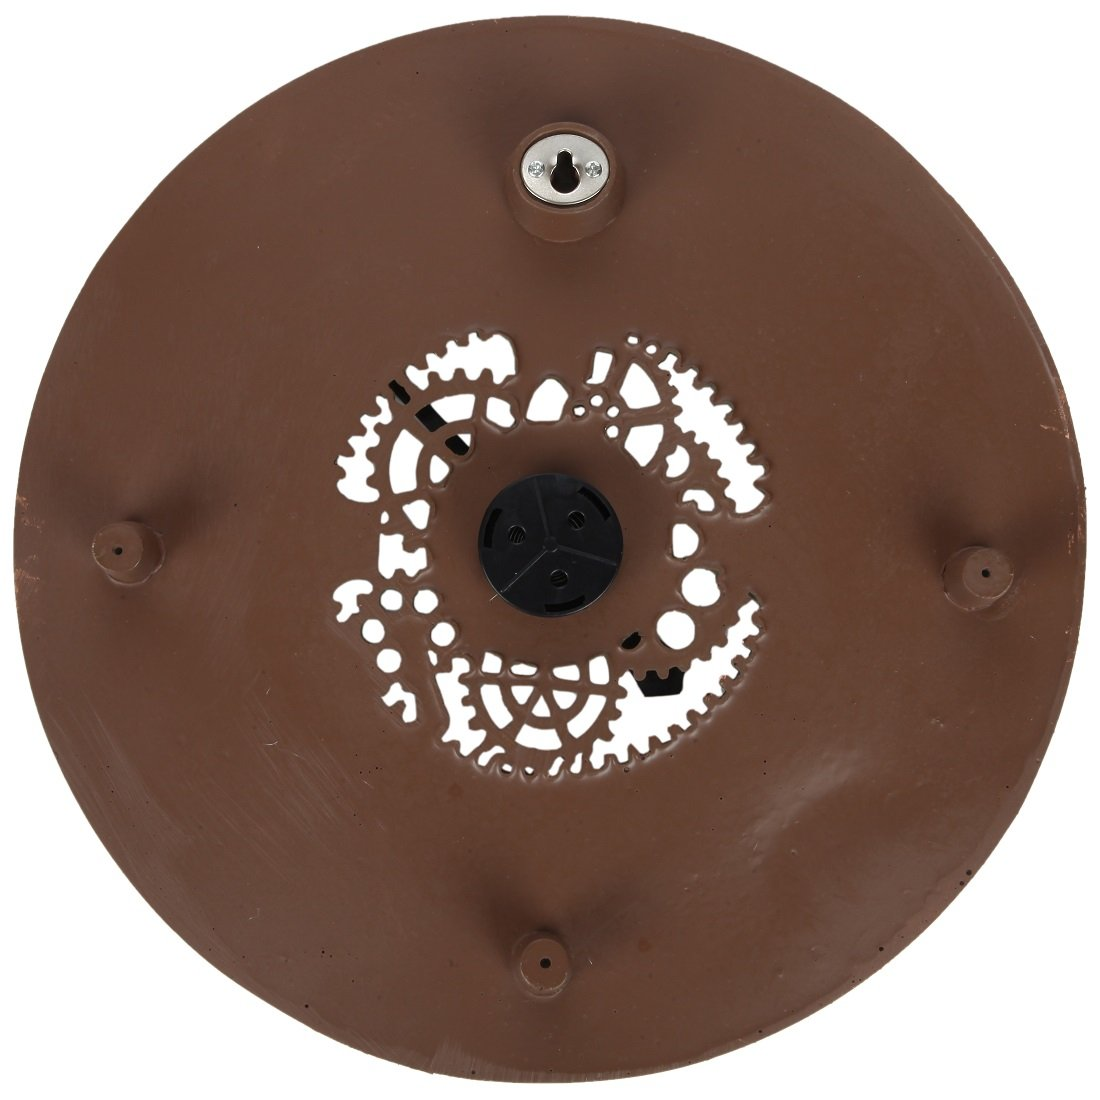 Lily's Home Hanging Wall Thermometer, Steampunk Gear and Cog Design with a Bronze Finish, Ideal for Indoor or Outdoor Use, Poly-Resin (13 Inches Diameter) by Lilyshome (Image #6)